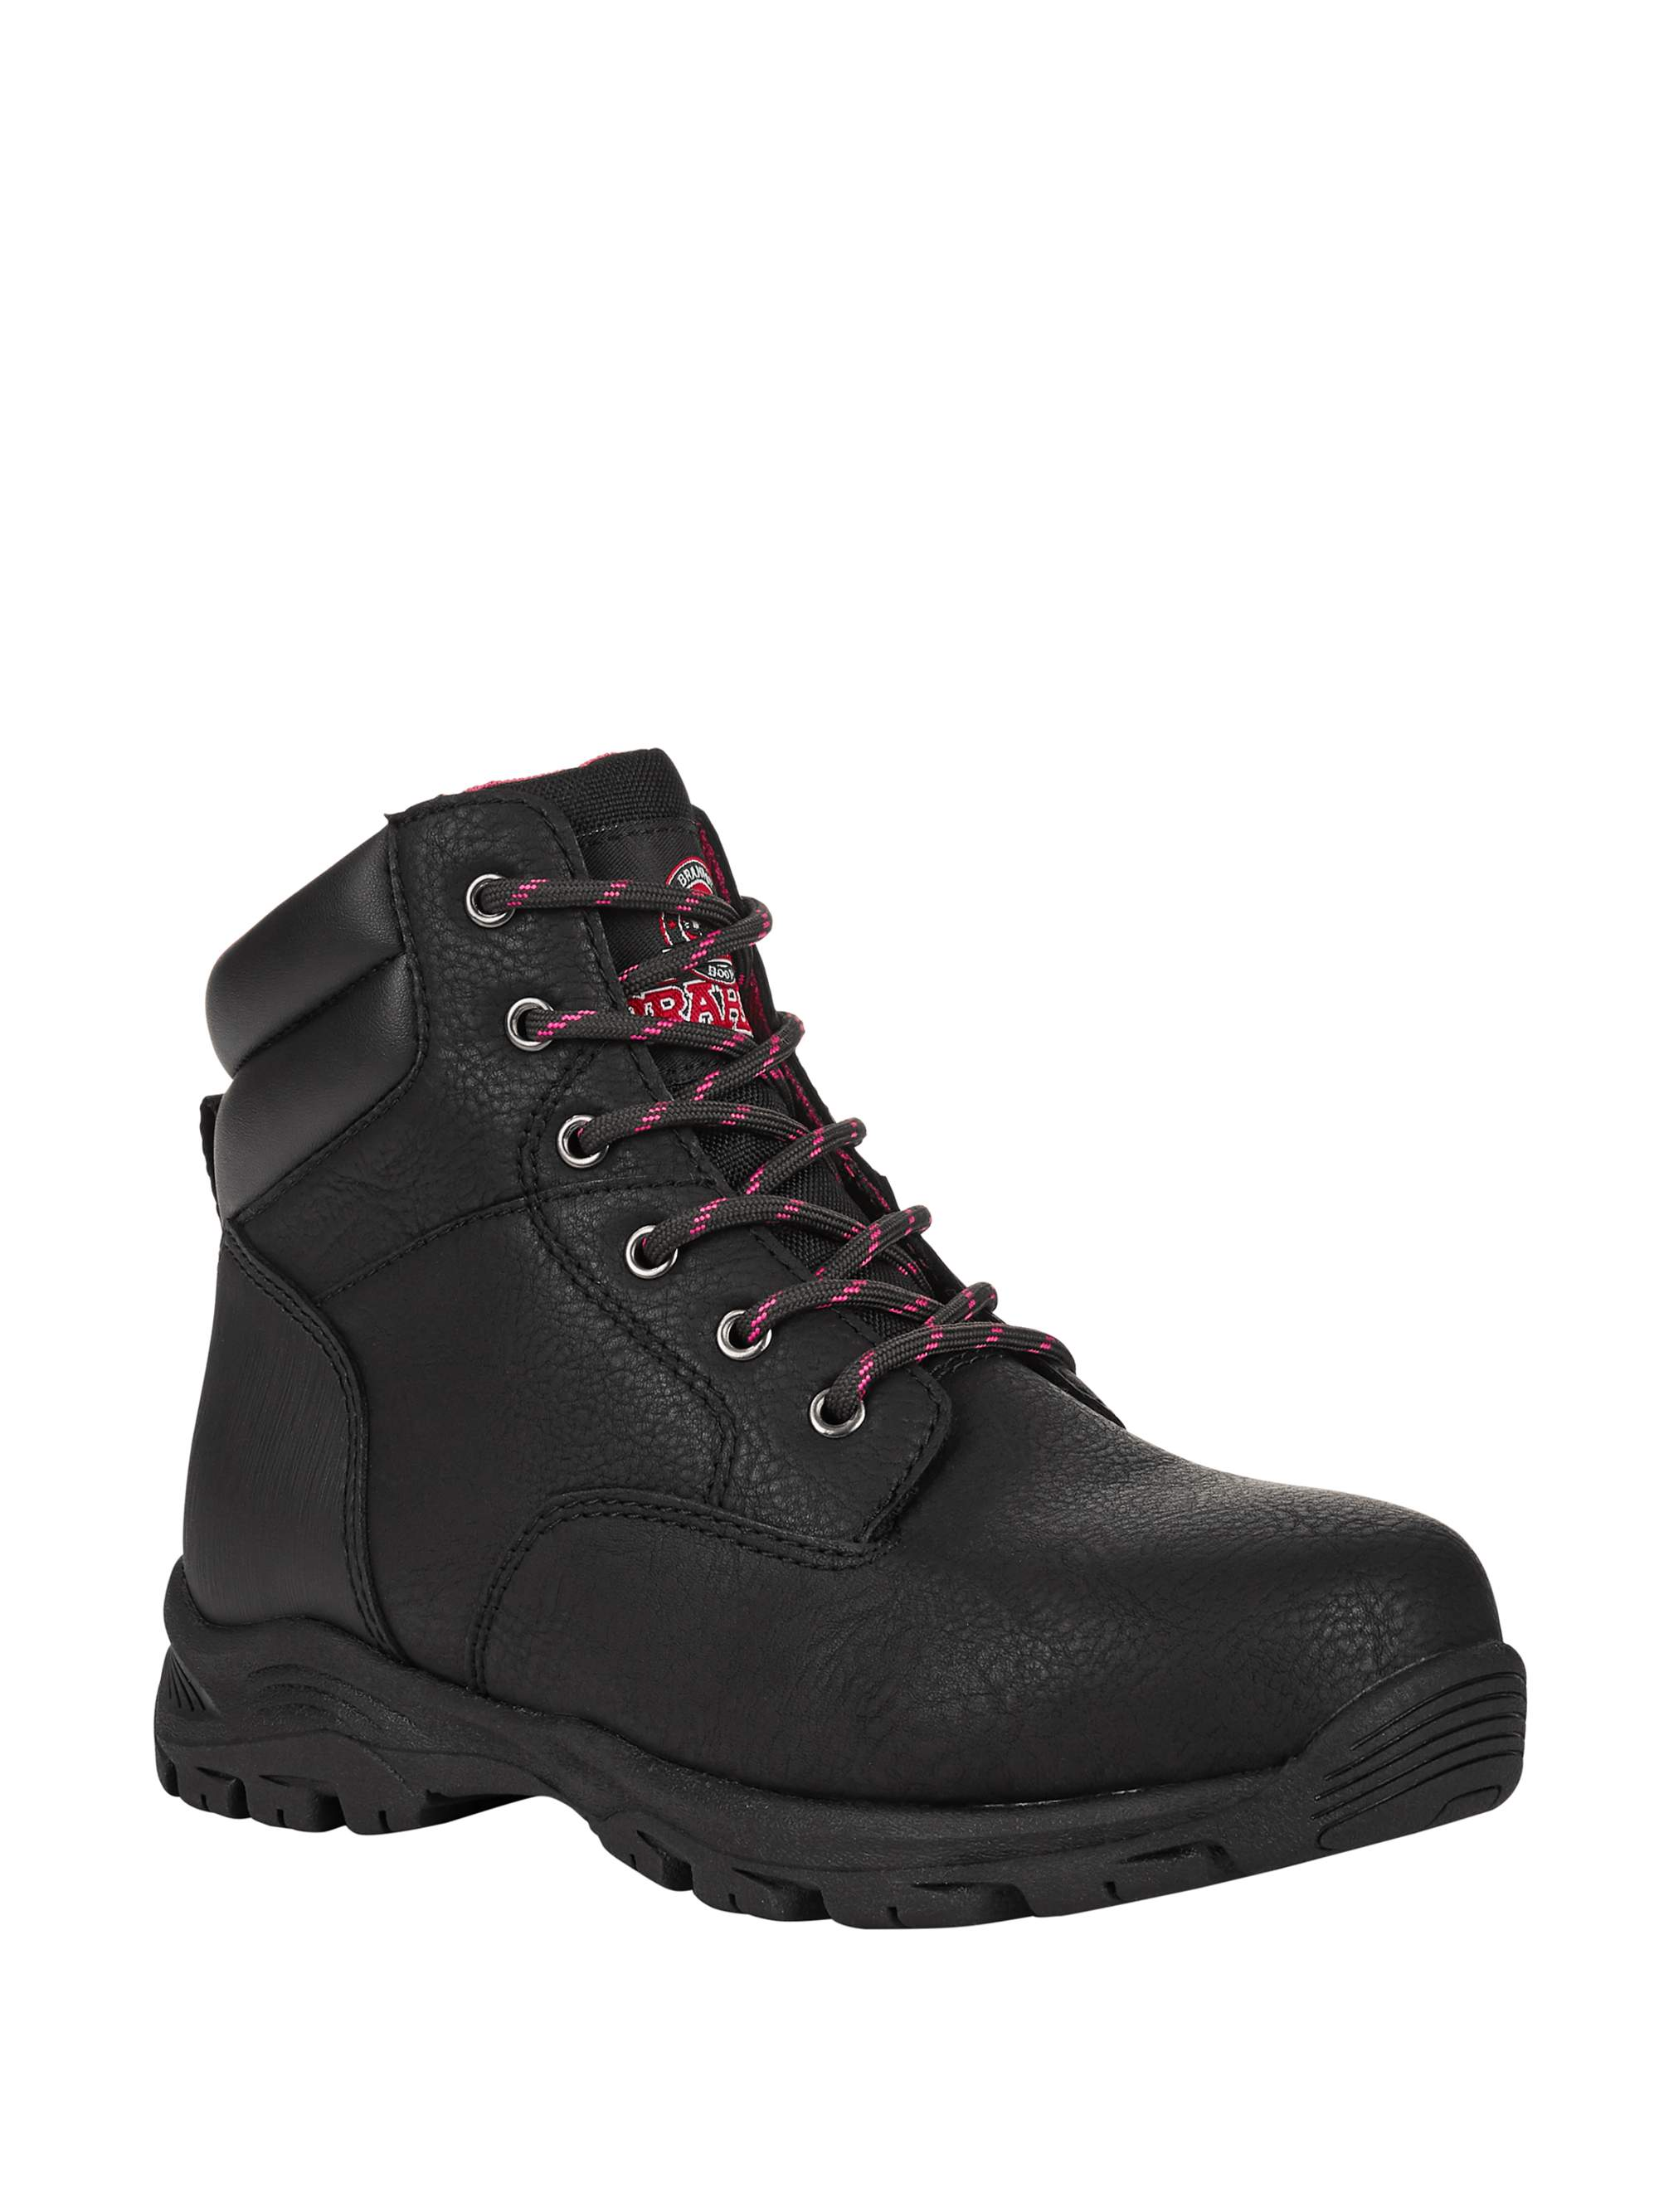 LADIES WOMENS BLACK//PINK STEEL TOE CAP PPE WORK SITE//SAFETY TRAINER BOOT SHOE